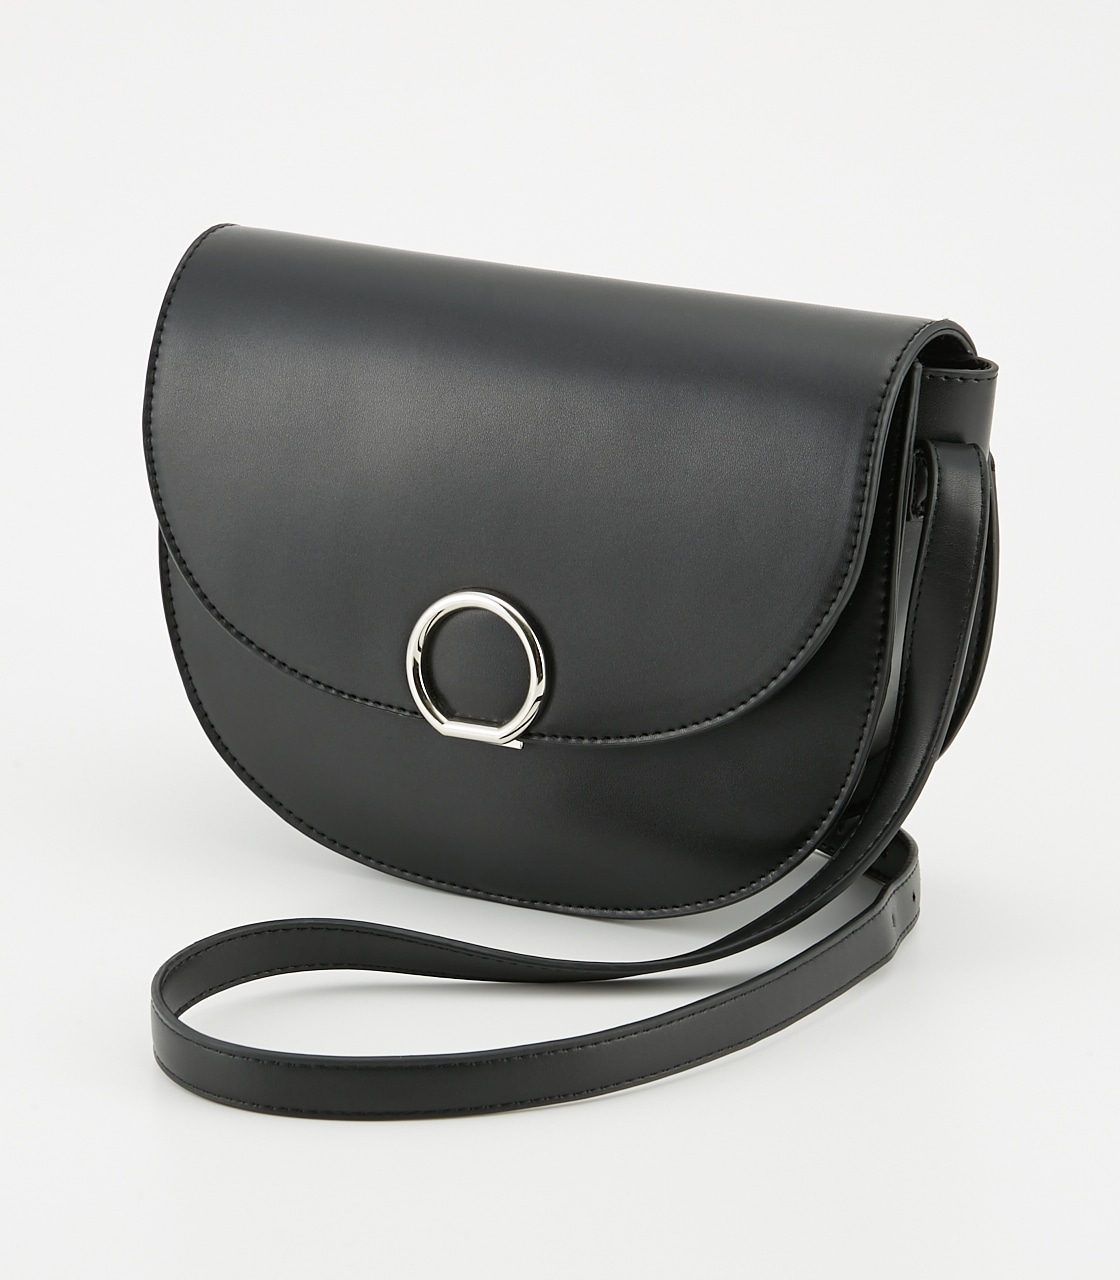 【AZUL BY MOUSSY】サークルメタルショルダーバッグ 詳細画像 BLK 1